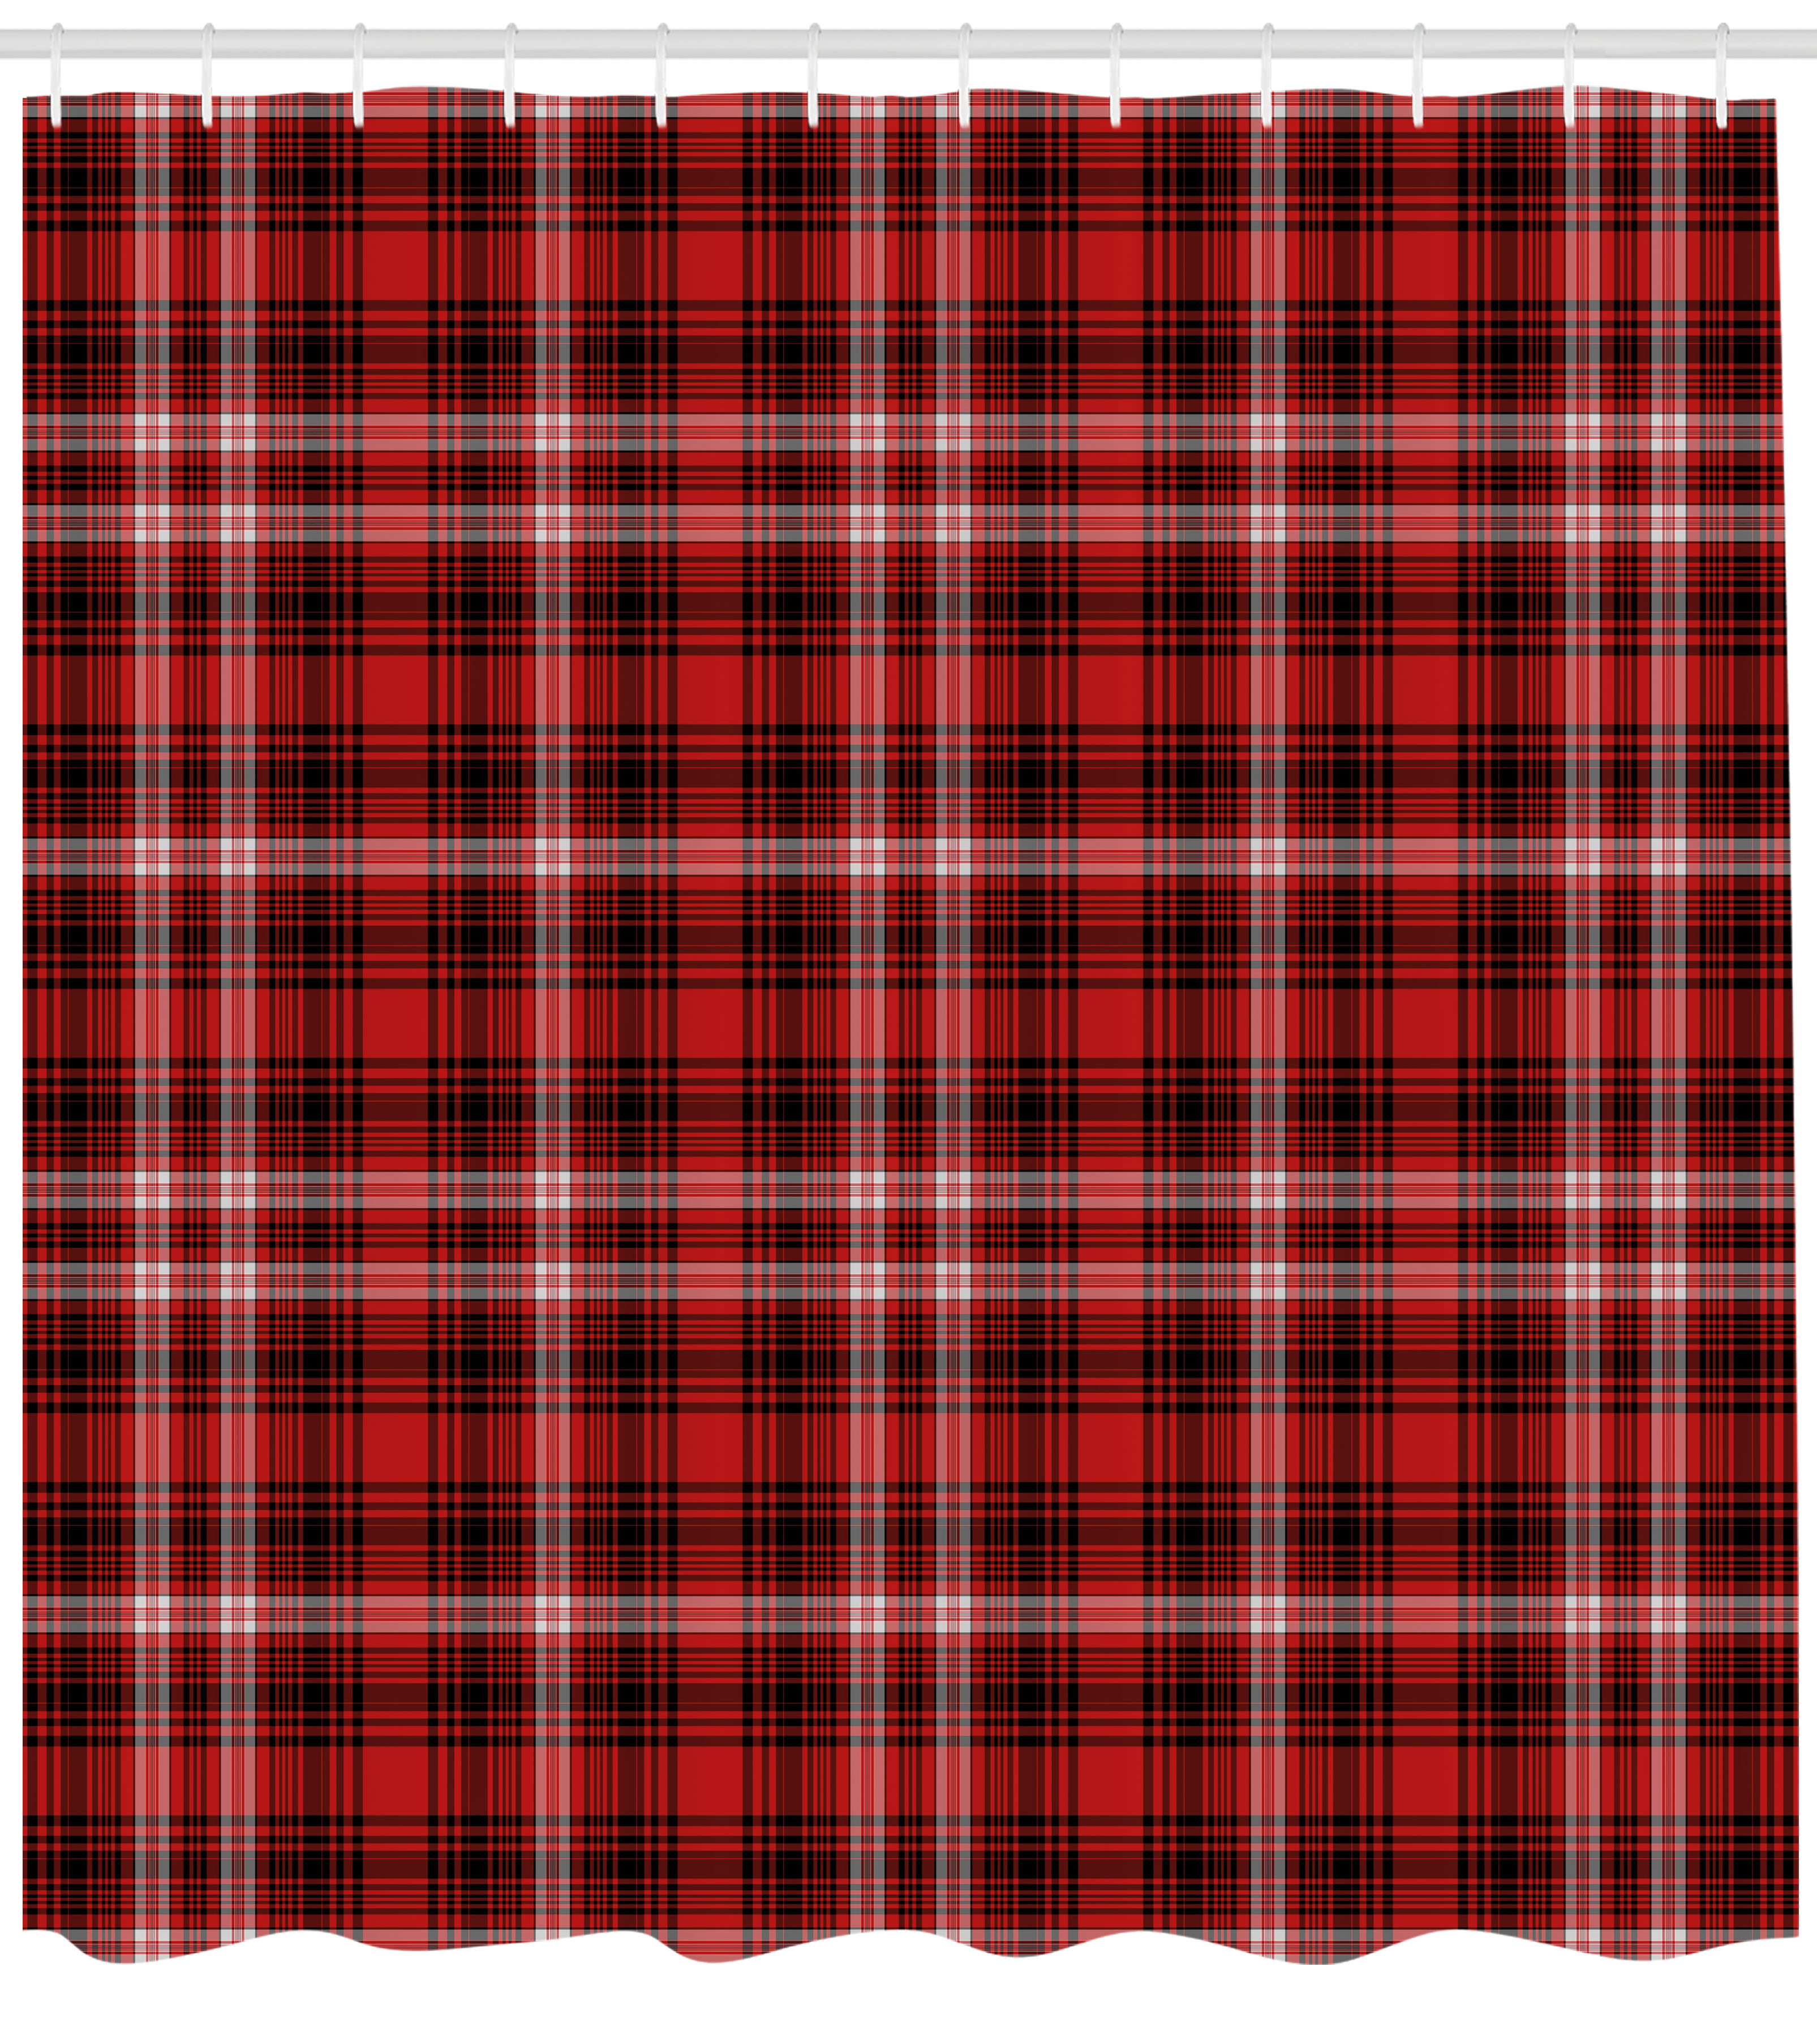 Plaid Shower Curtain Nostalgic Striped Pattern From British Country With Constrasting Colors Fabric Bathroom Set Hooks Scarlet Black White